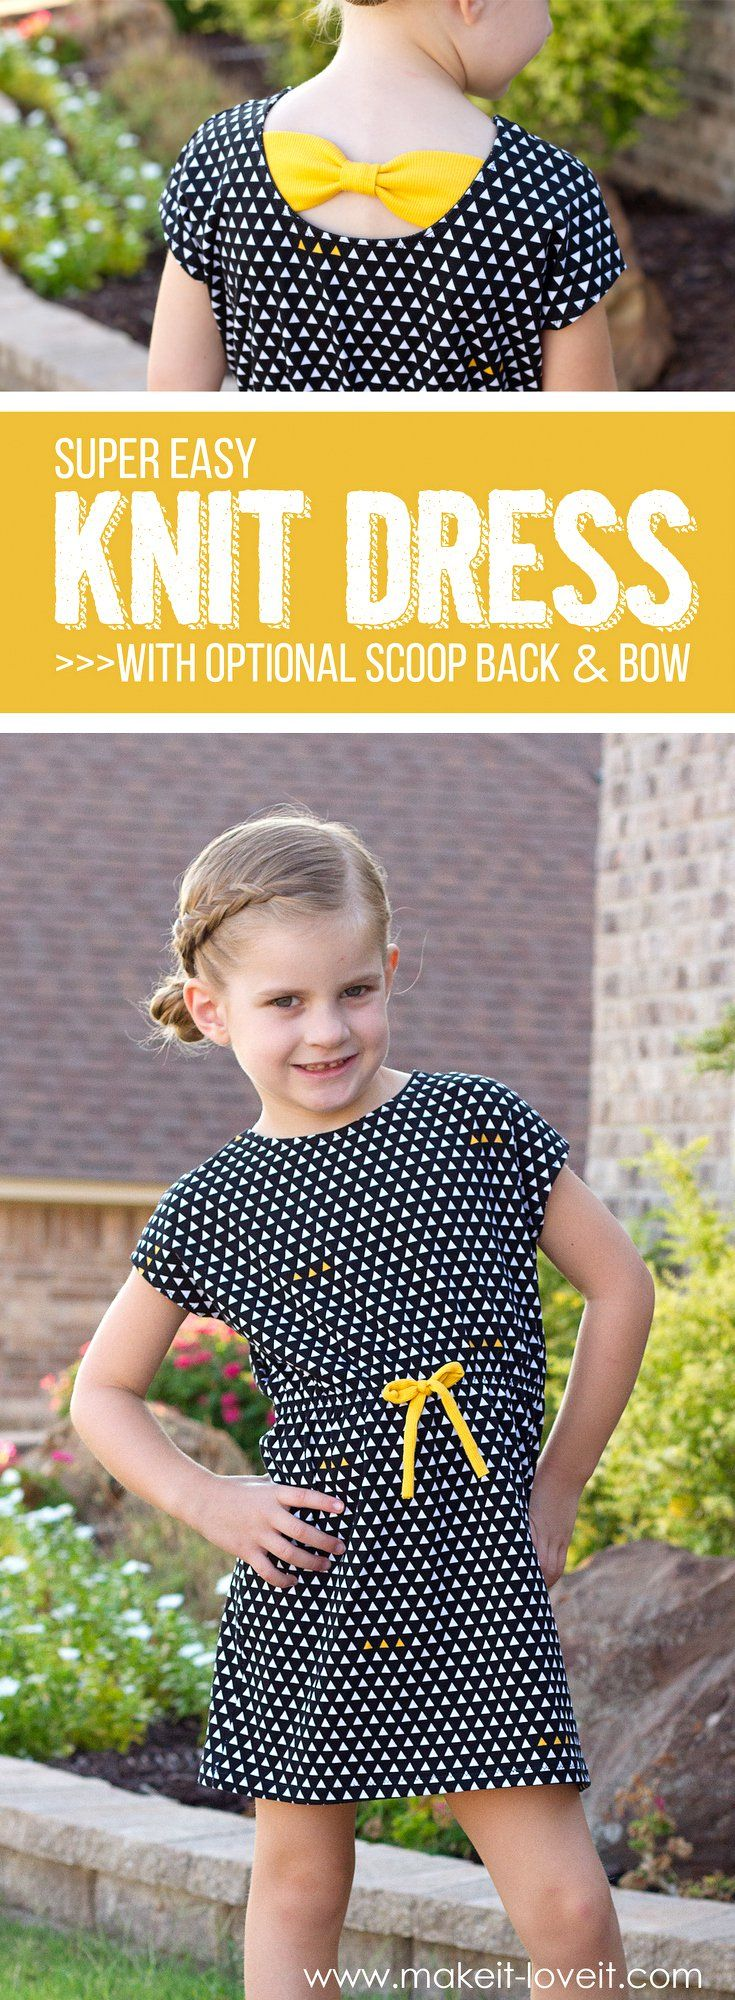 Super Easy Knit Dress...with optional Scoop-Back and Bow! | via www.makeit-loveit.com